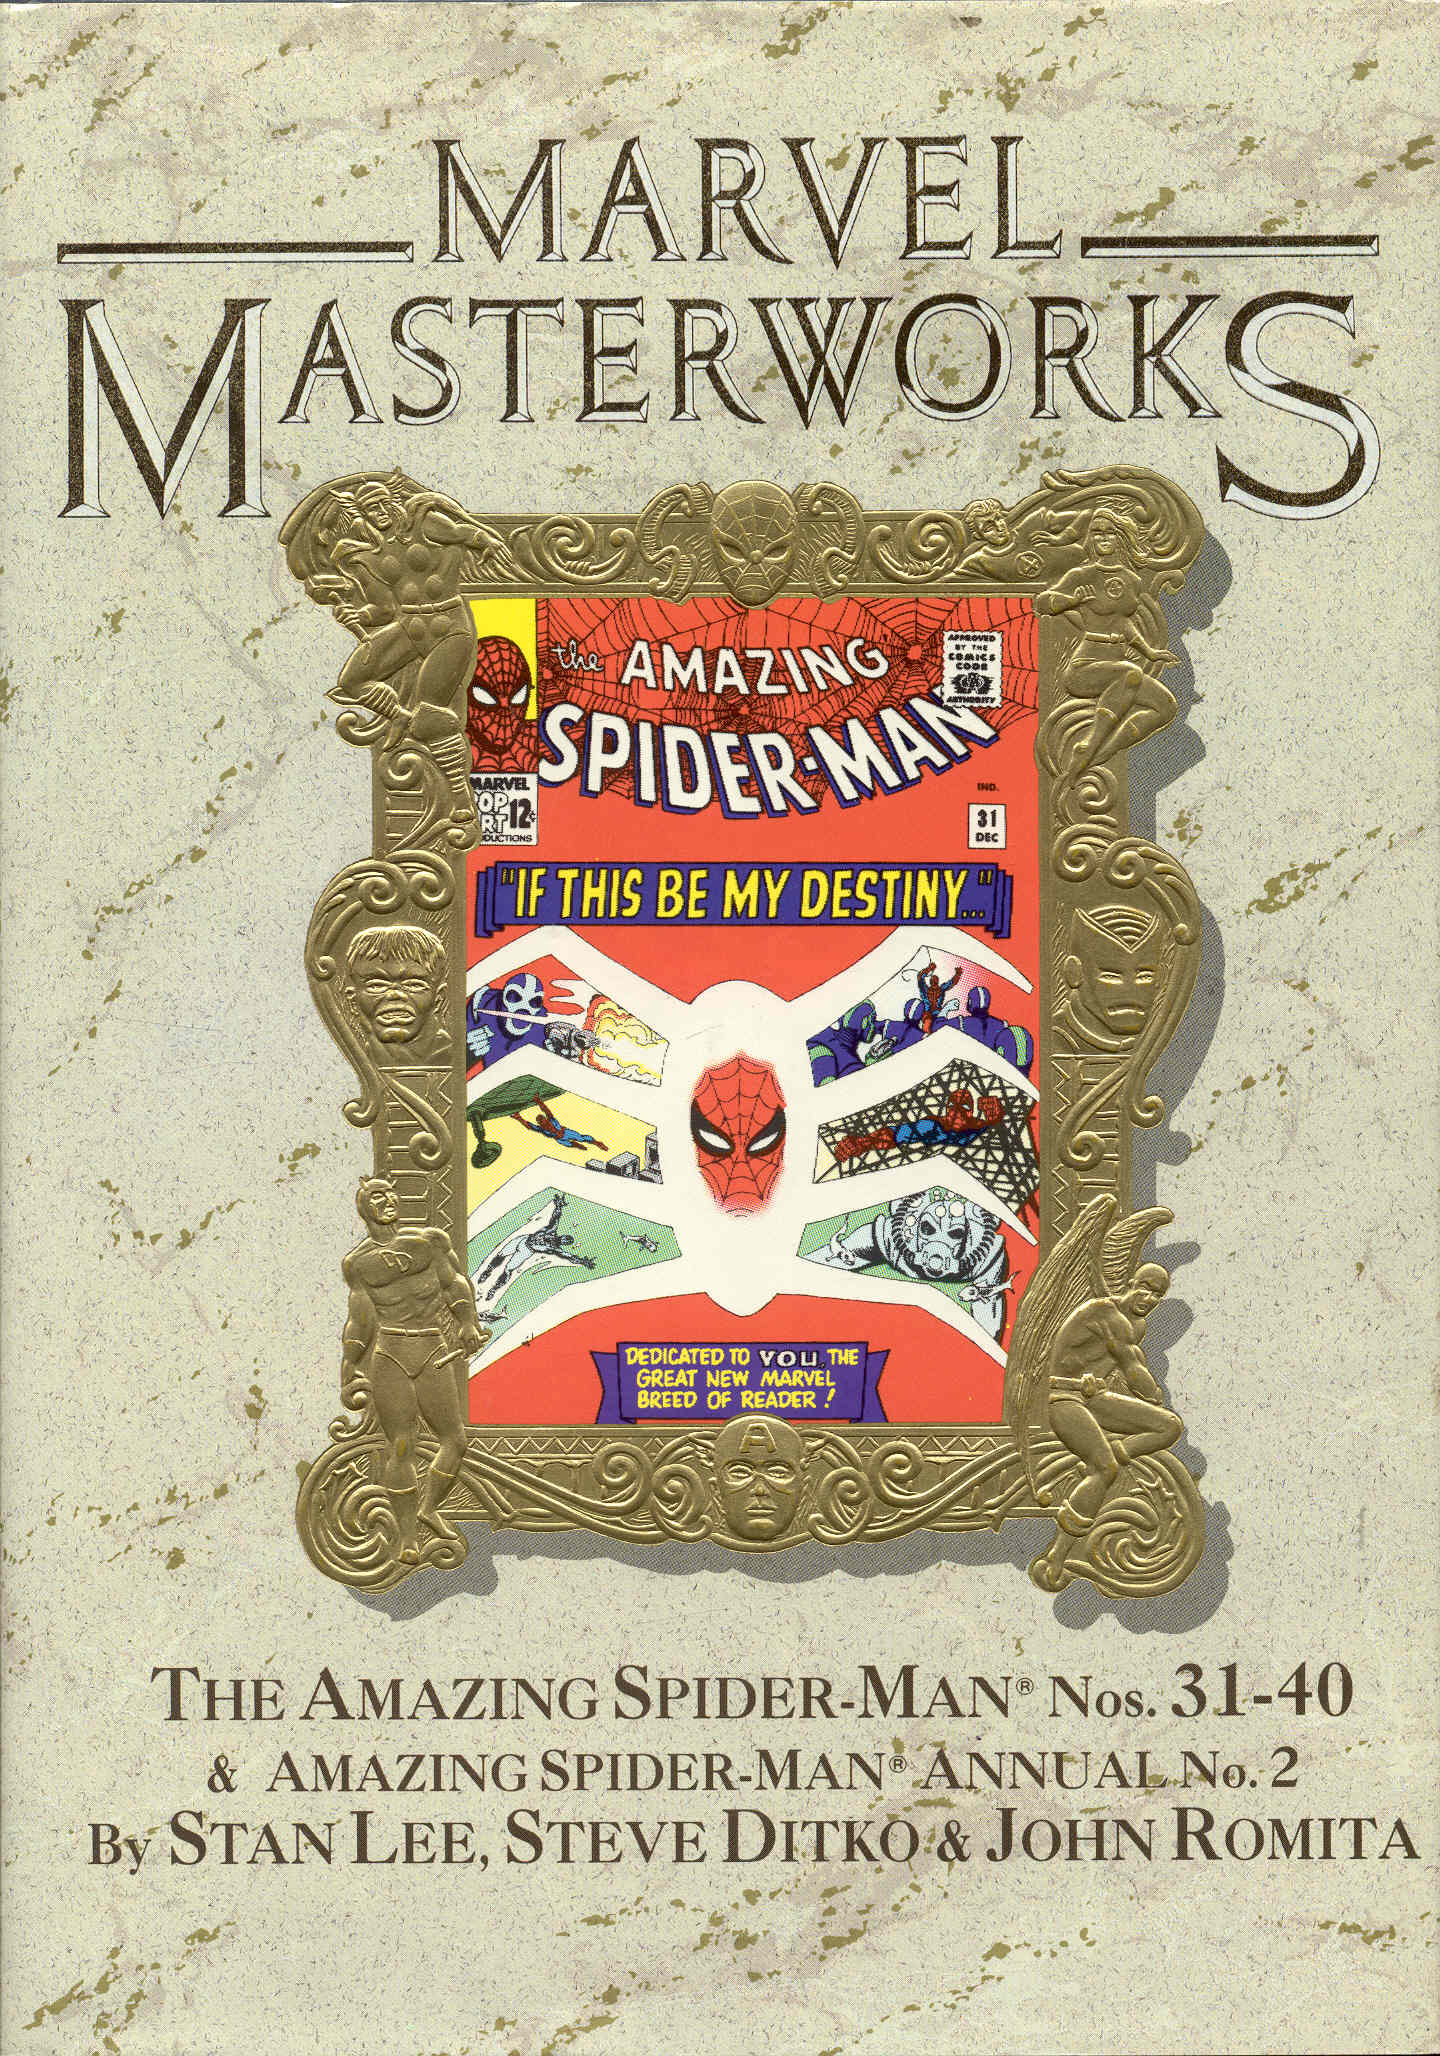 Image for Marvel Masterworks Volume 16: The Amazing Spider-Man Nos. 31-40 & Annual No. 2